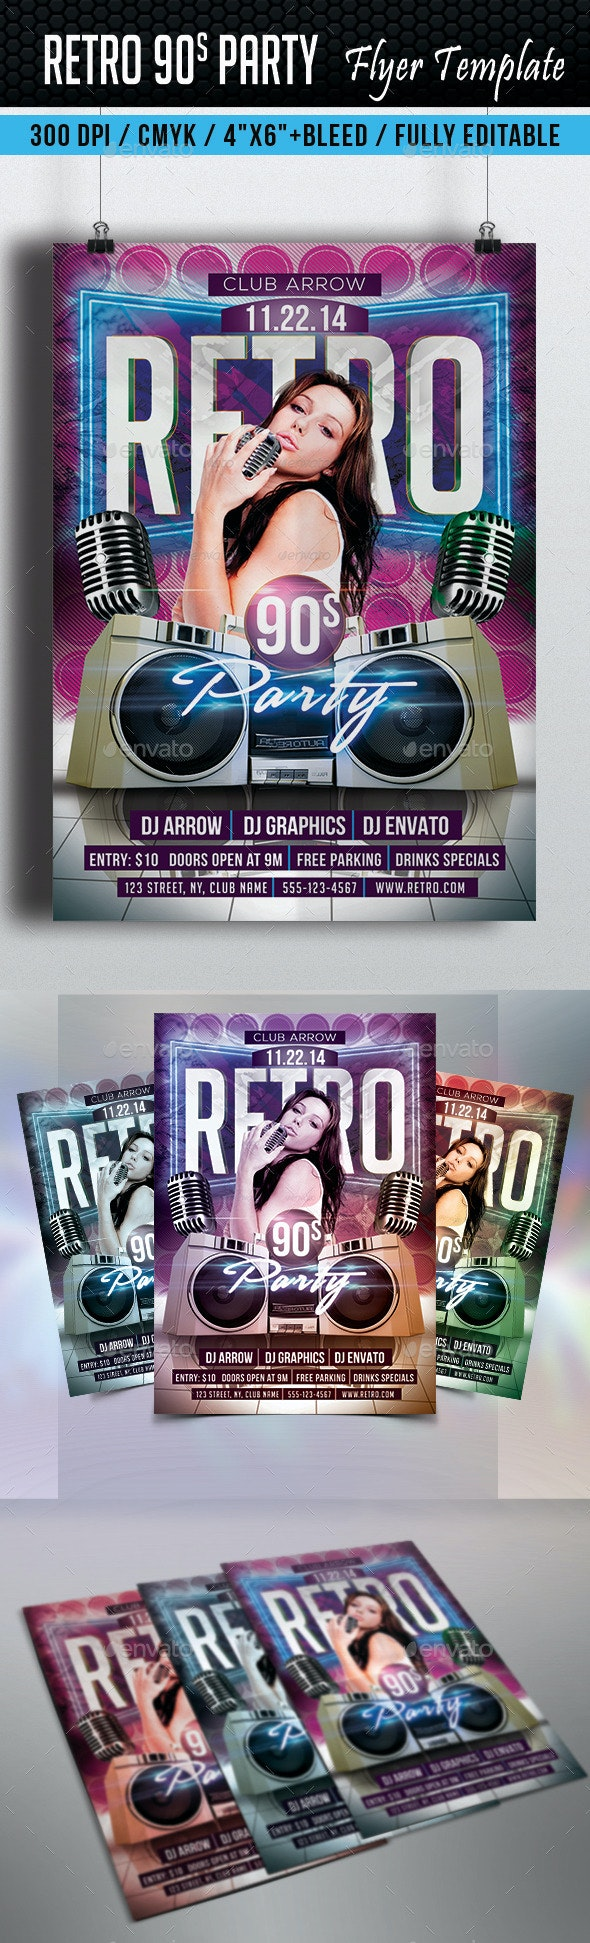 Retro 90s Party Flyer Template - Clubs & Parties Events